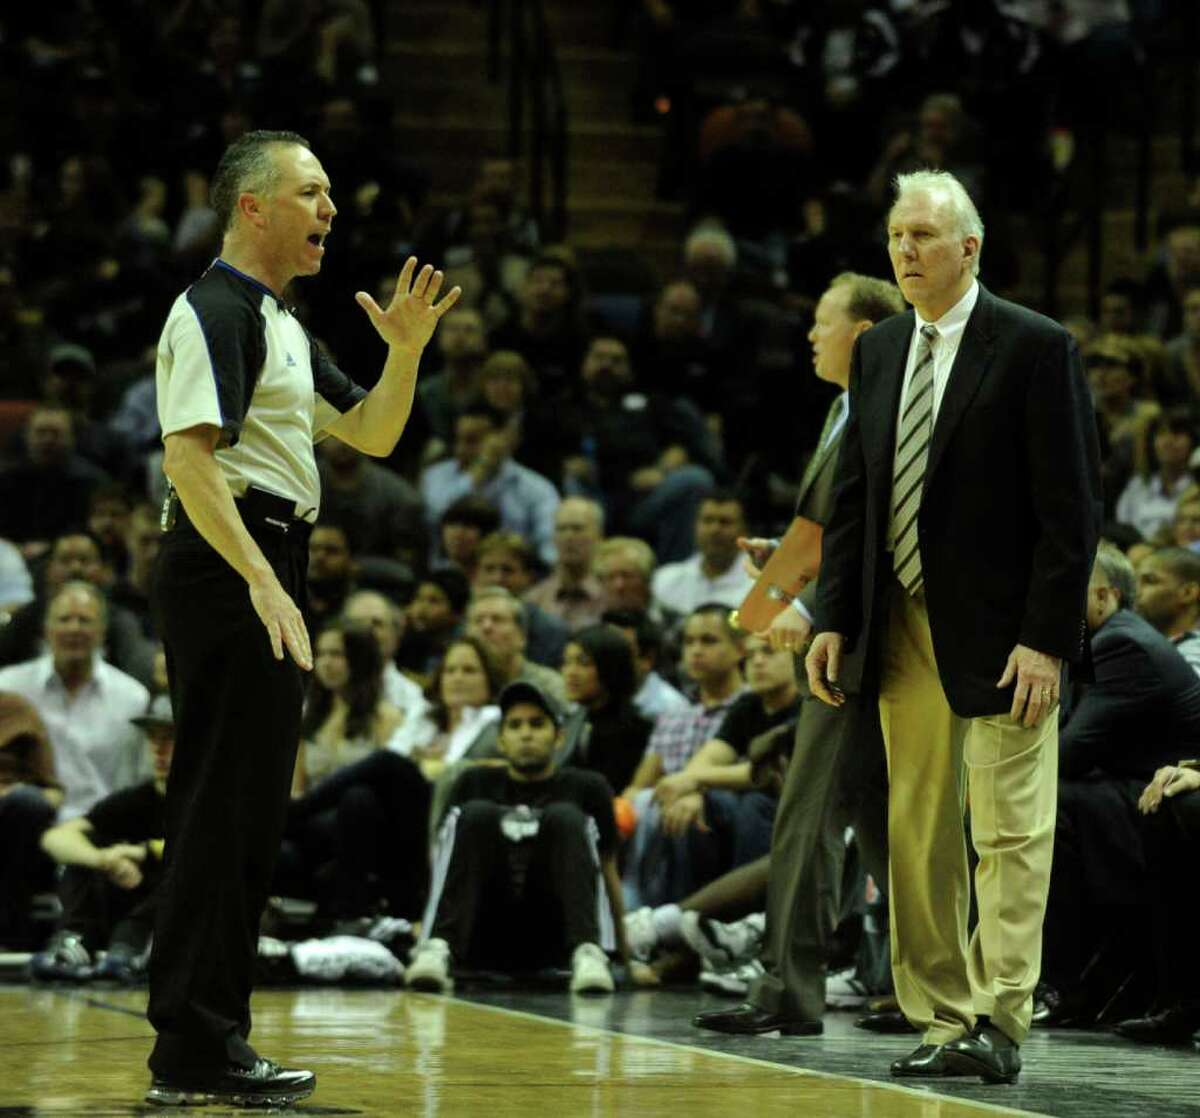 San Antonio Spurs coach Gregg Popovich watches as official Jason Phillips makes a call against his team during second-half NBA action against the Oklahoma City Thunder at the AT&T Center on Wednesday, Feb. 23, 2011. BILLY CALZADA / gcalzada@express-news.net Oklahoma City Thunder at San Antonio Spurs